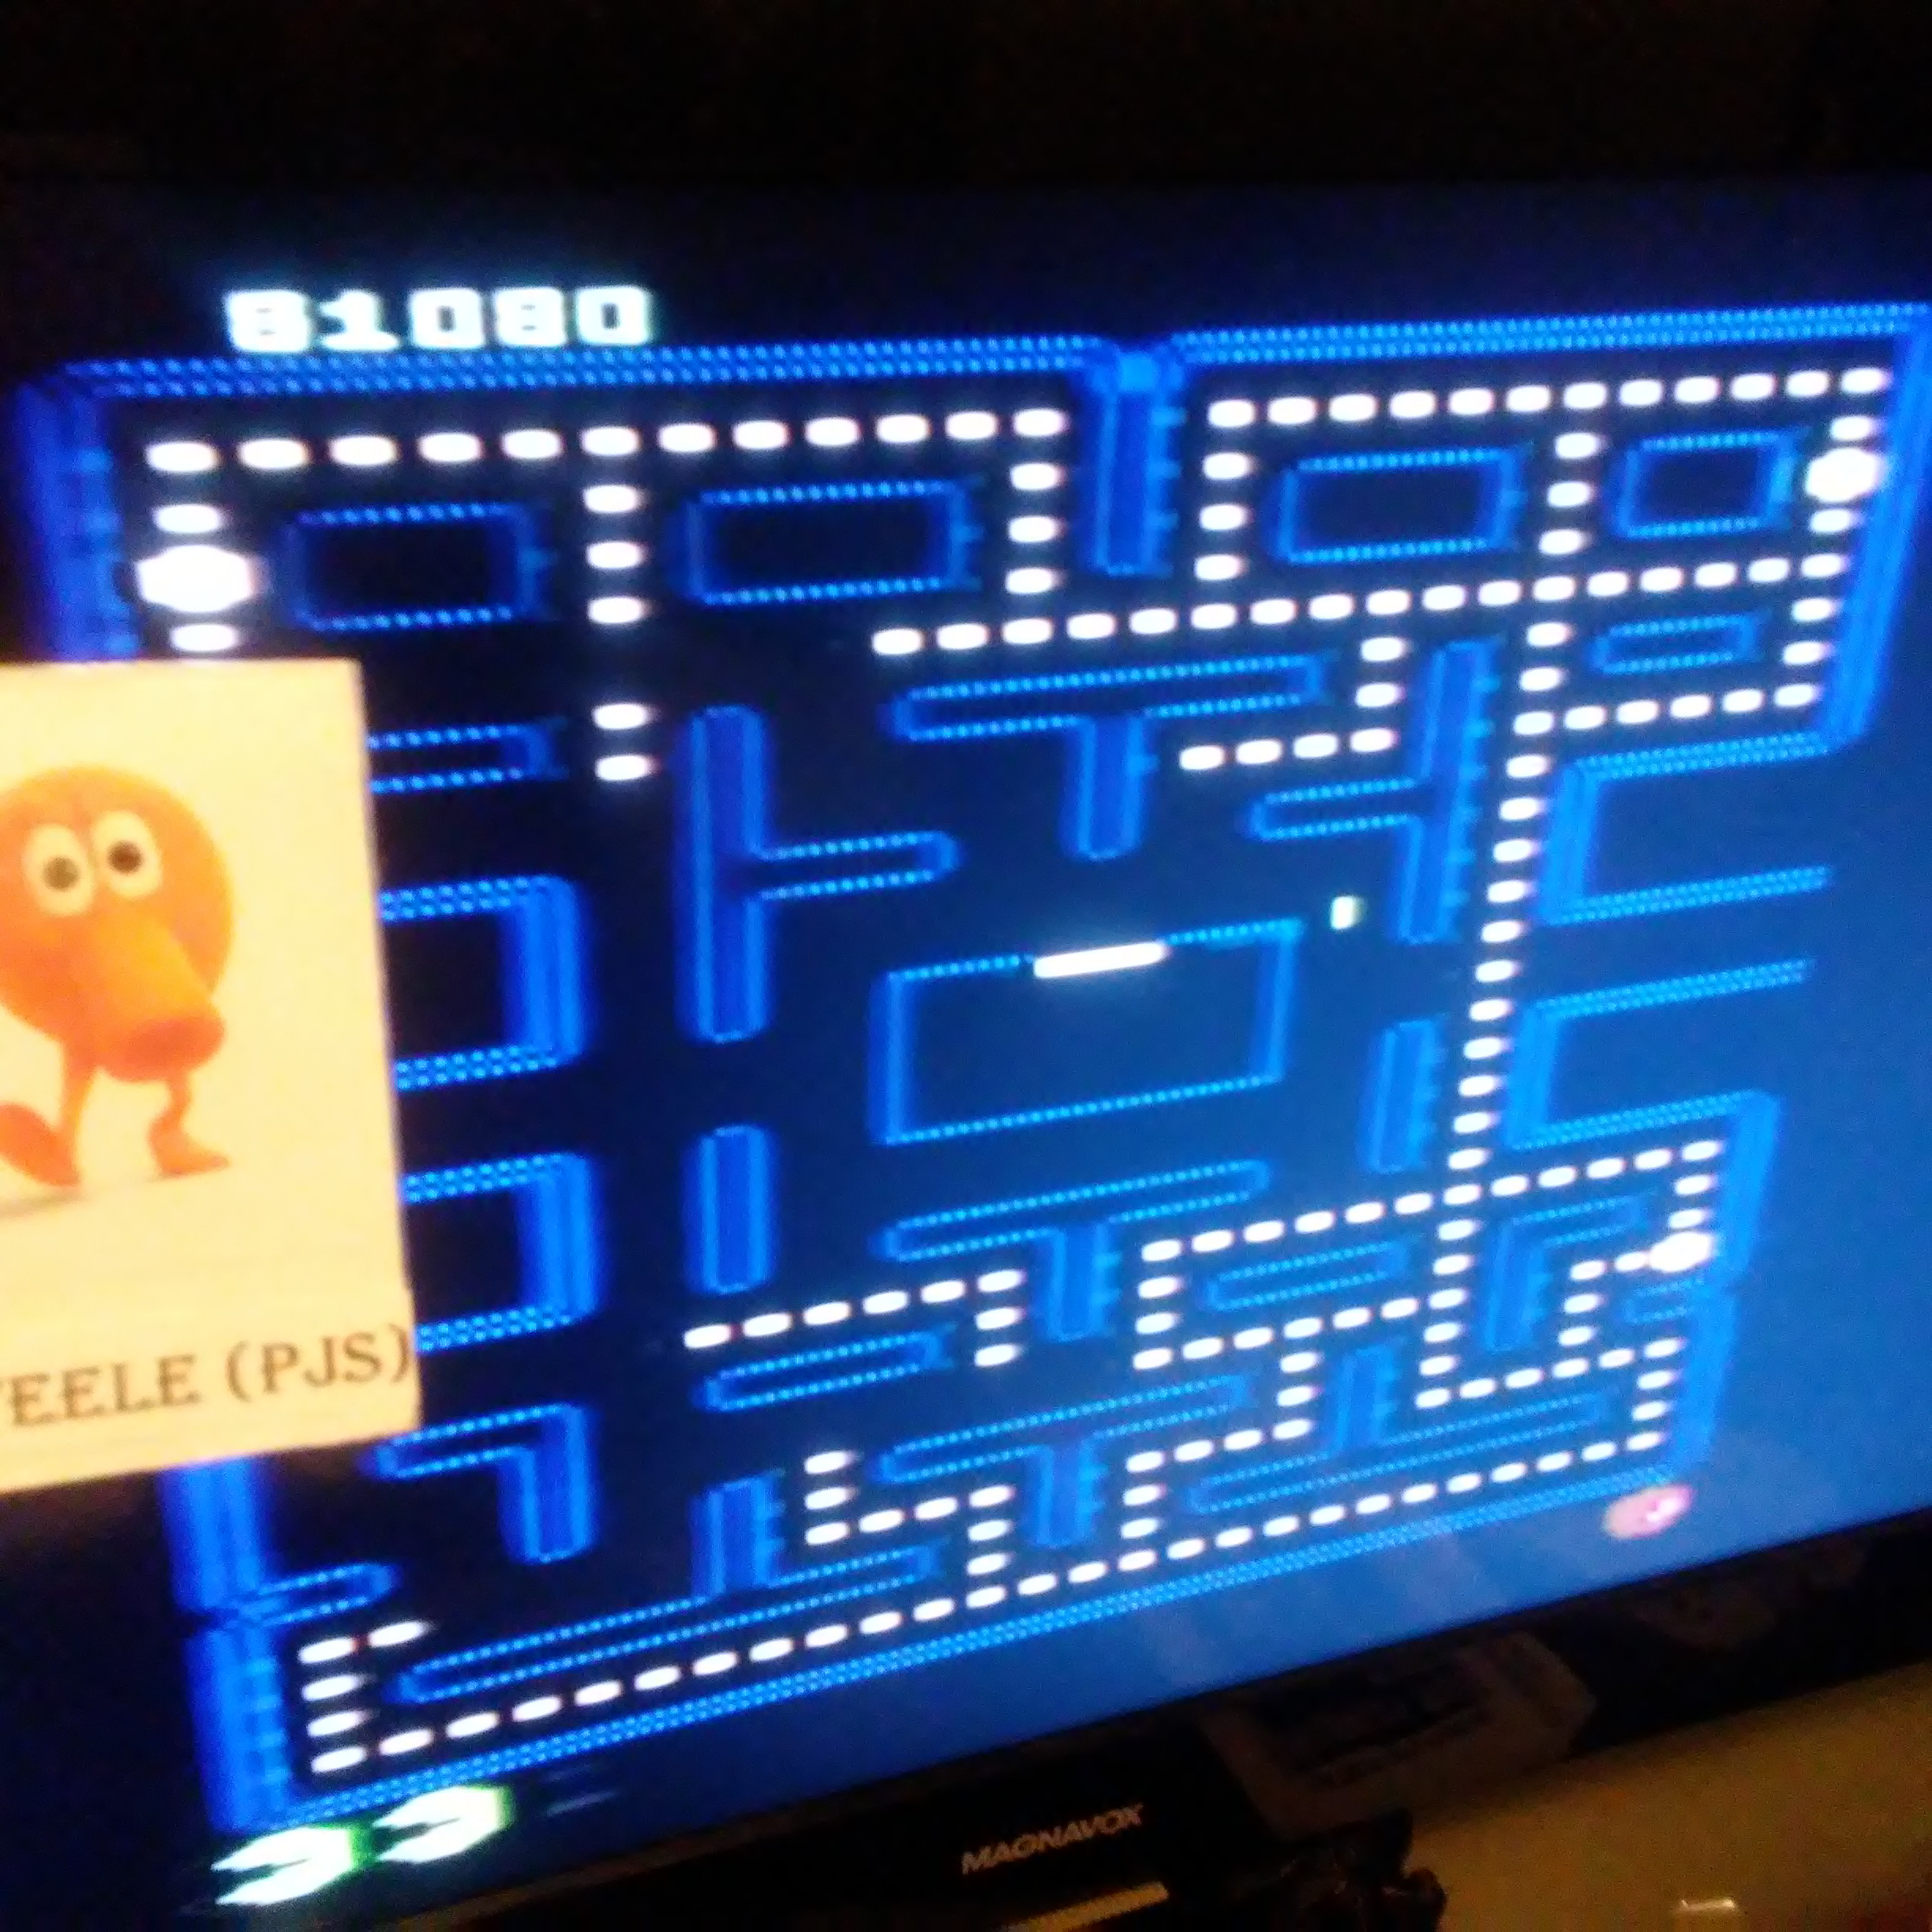 Pjsteele: Pac-Man Collection: Pac-Man [Apple Two/Plus Off/Fast On] (Atari 7800) 81,080 points on 2018-09-28 22:02:59